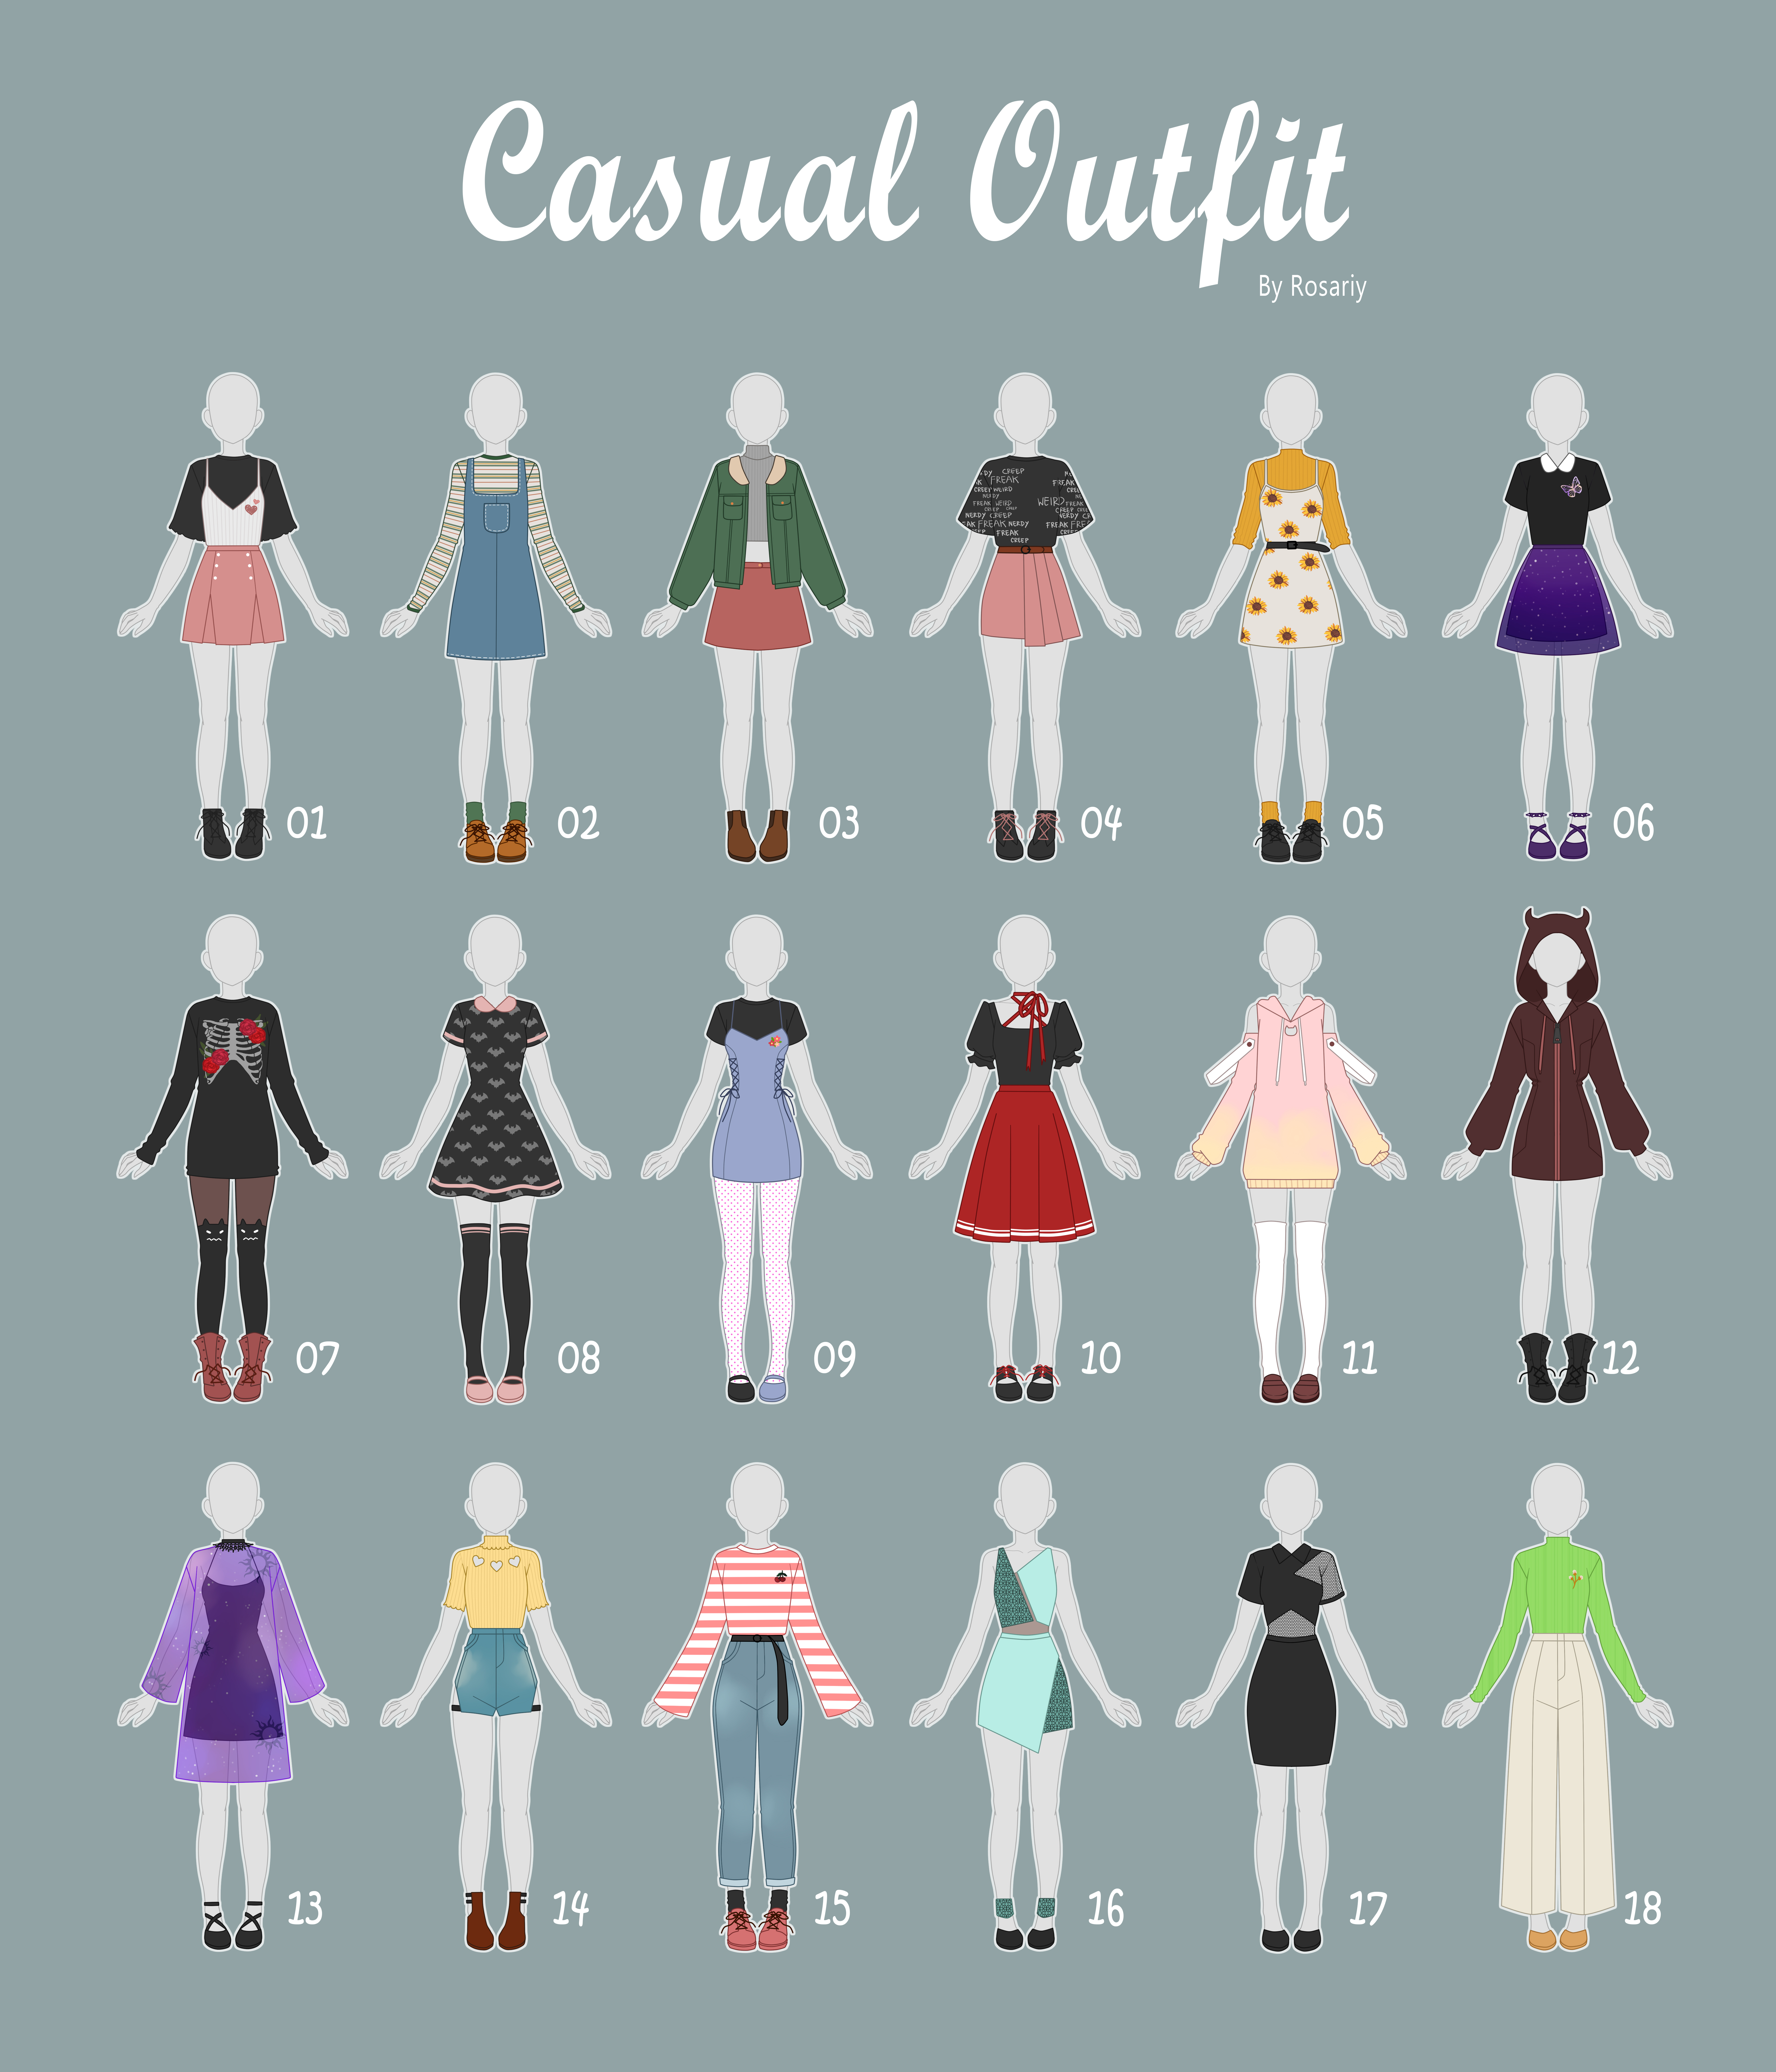 (CLOSED) CASUAL Outfit Adopts 38 by Rosariy on DeviantArt